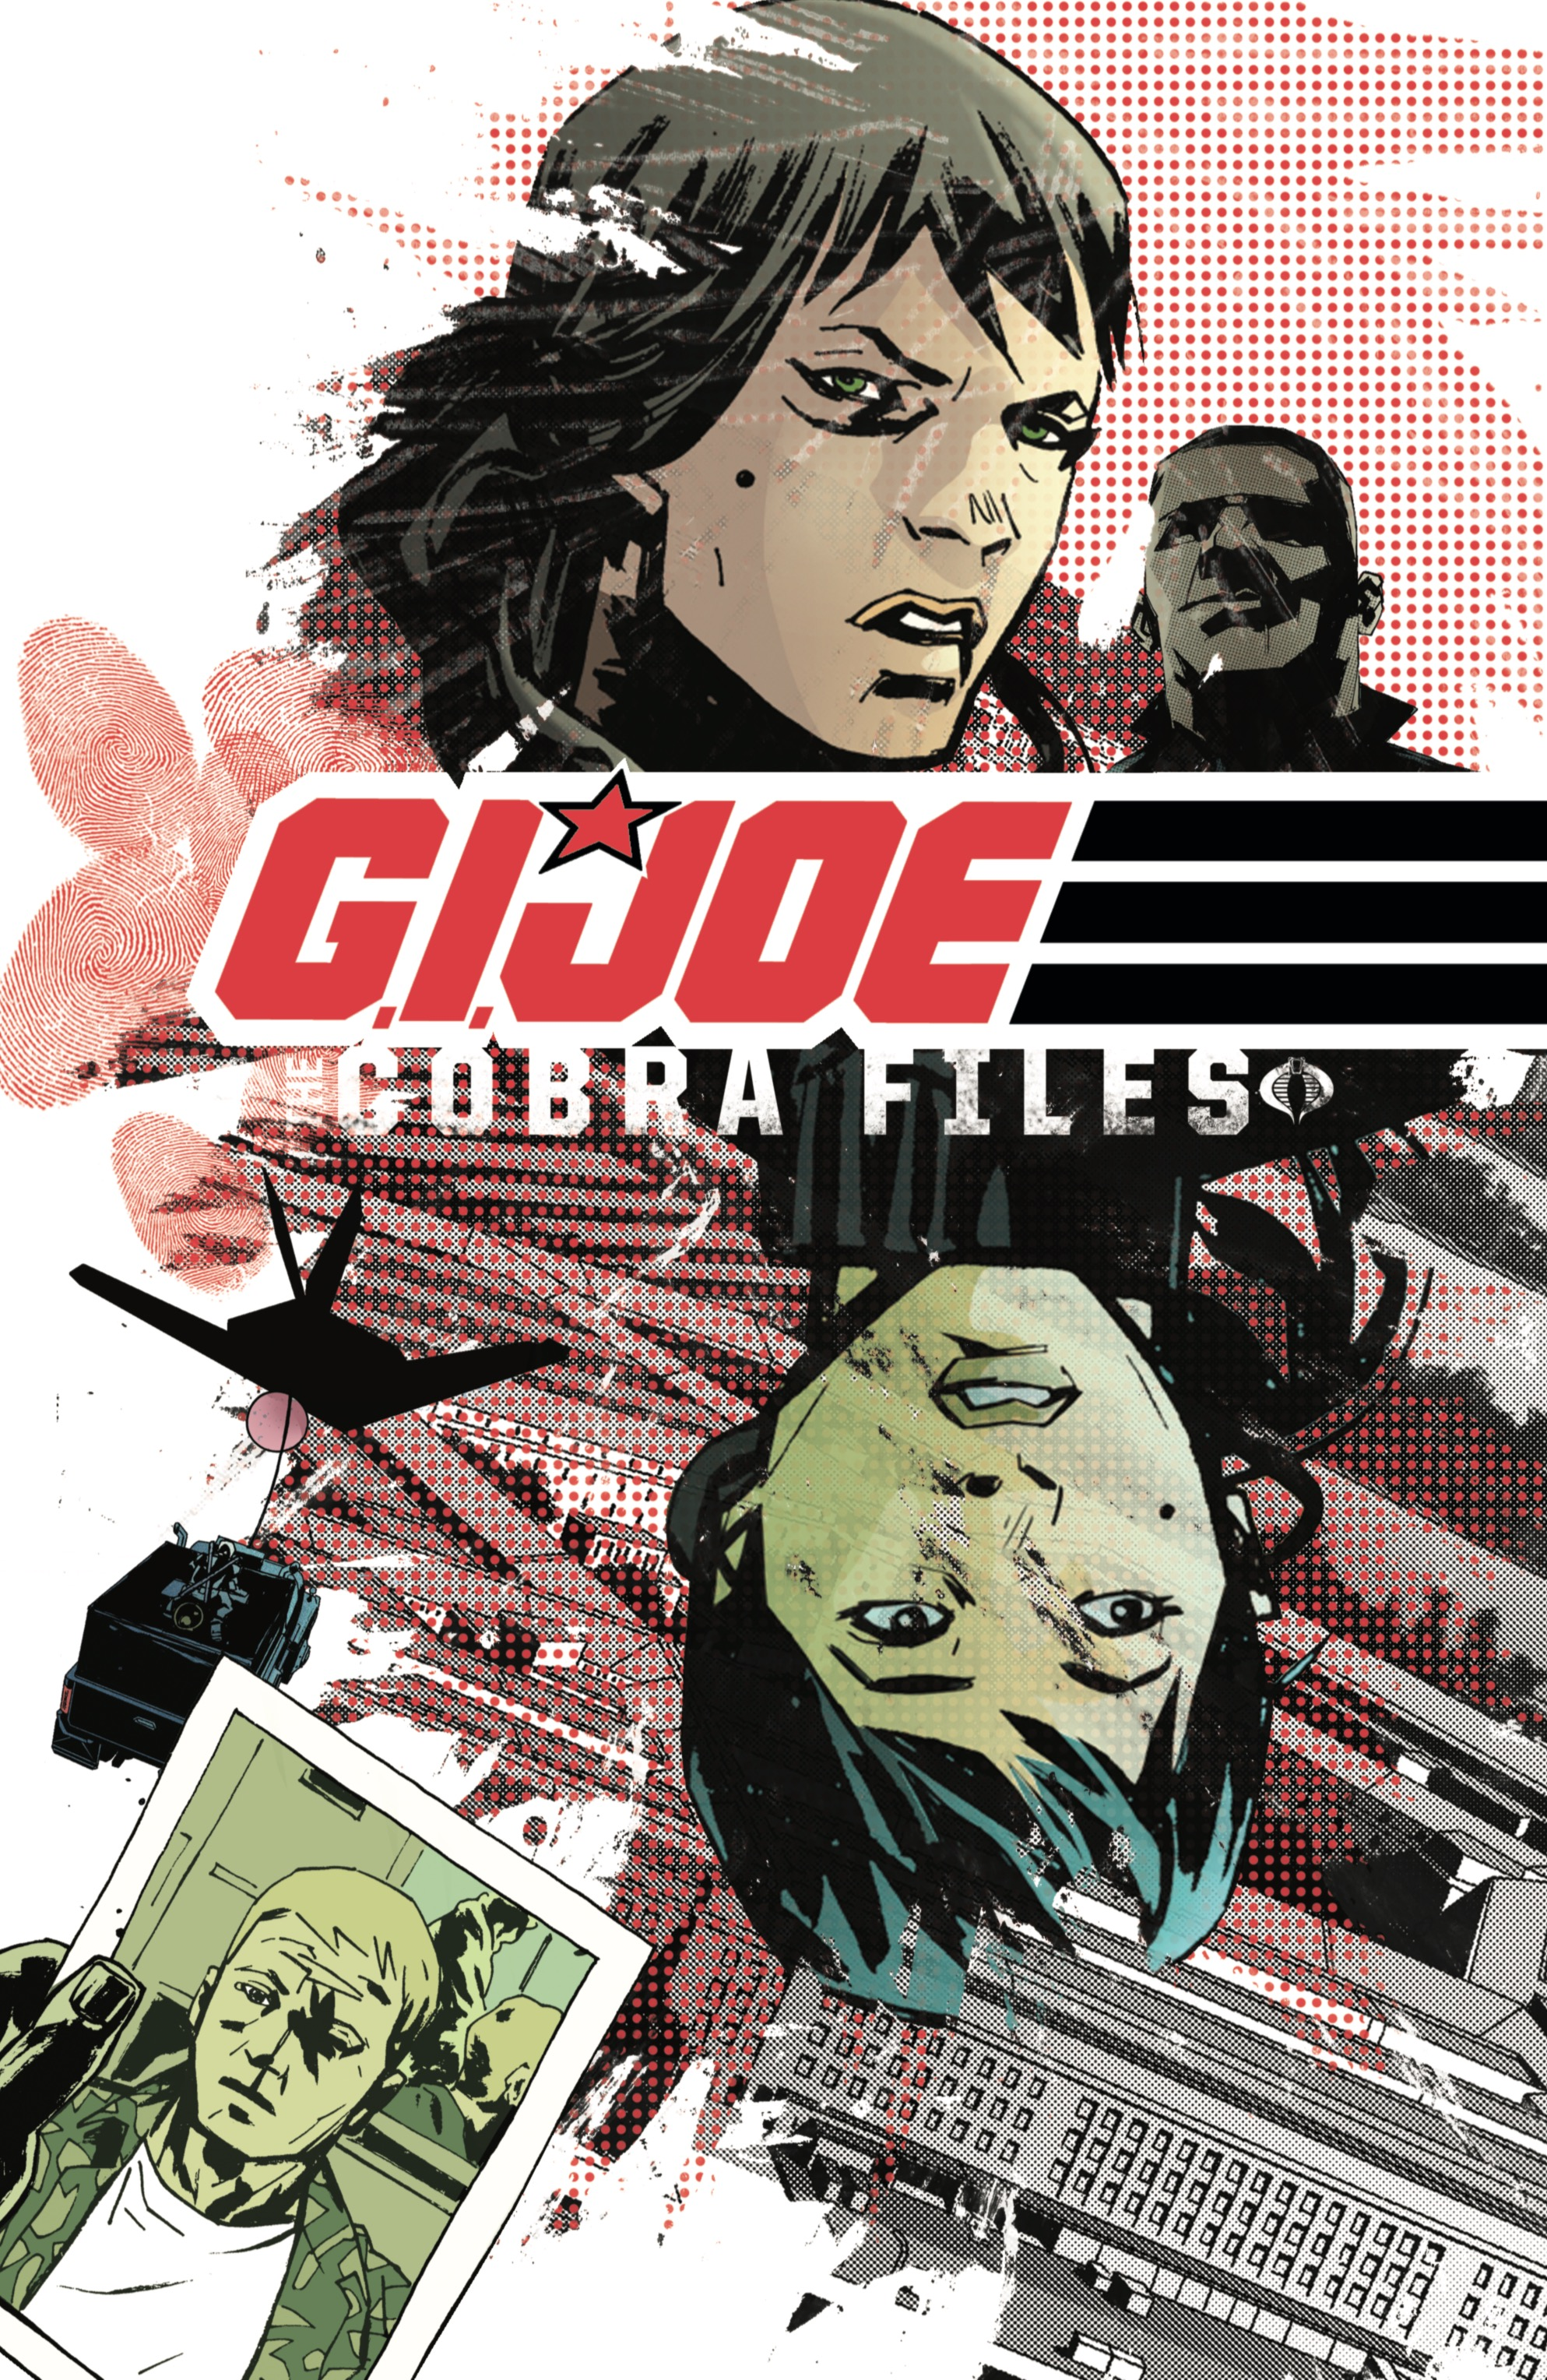 Read online G.I. Joe: The Cobra Files comic -  Issue # TPB 1 - 2